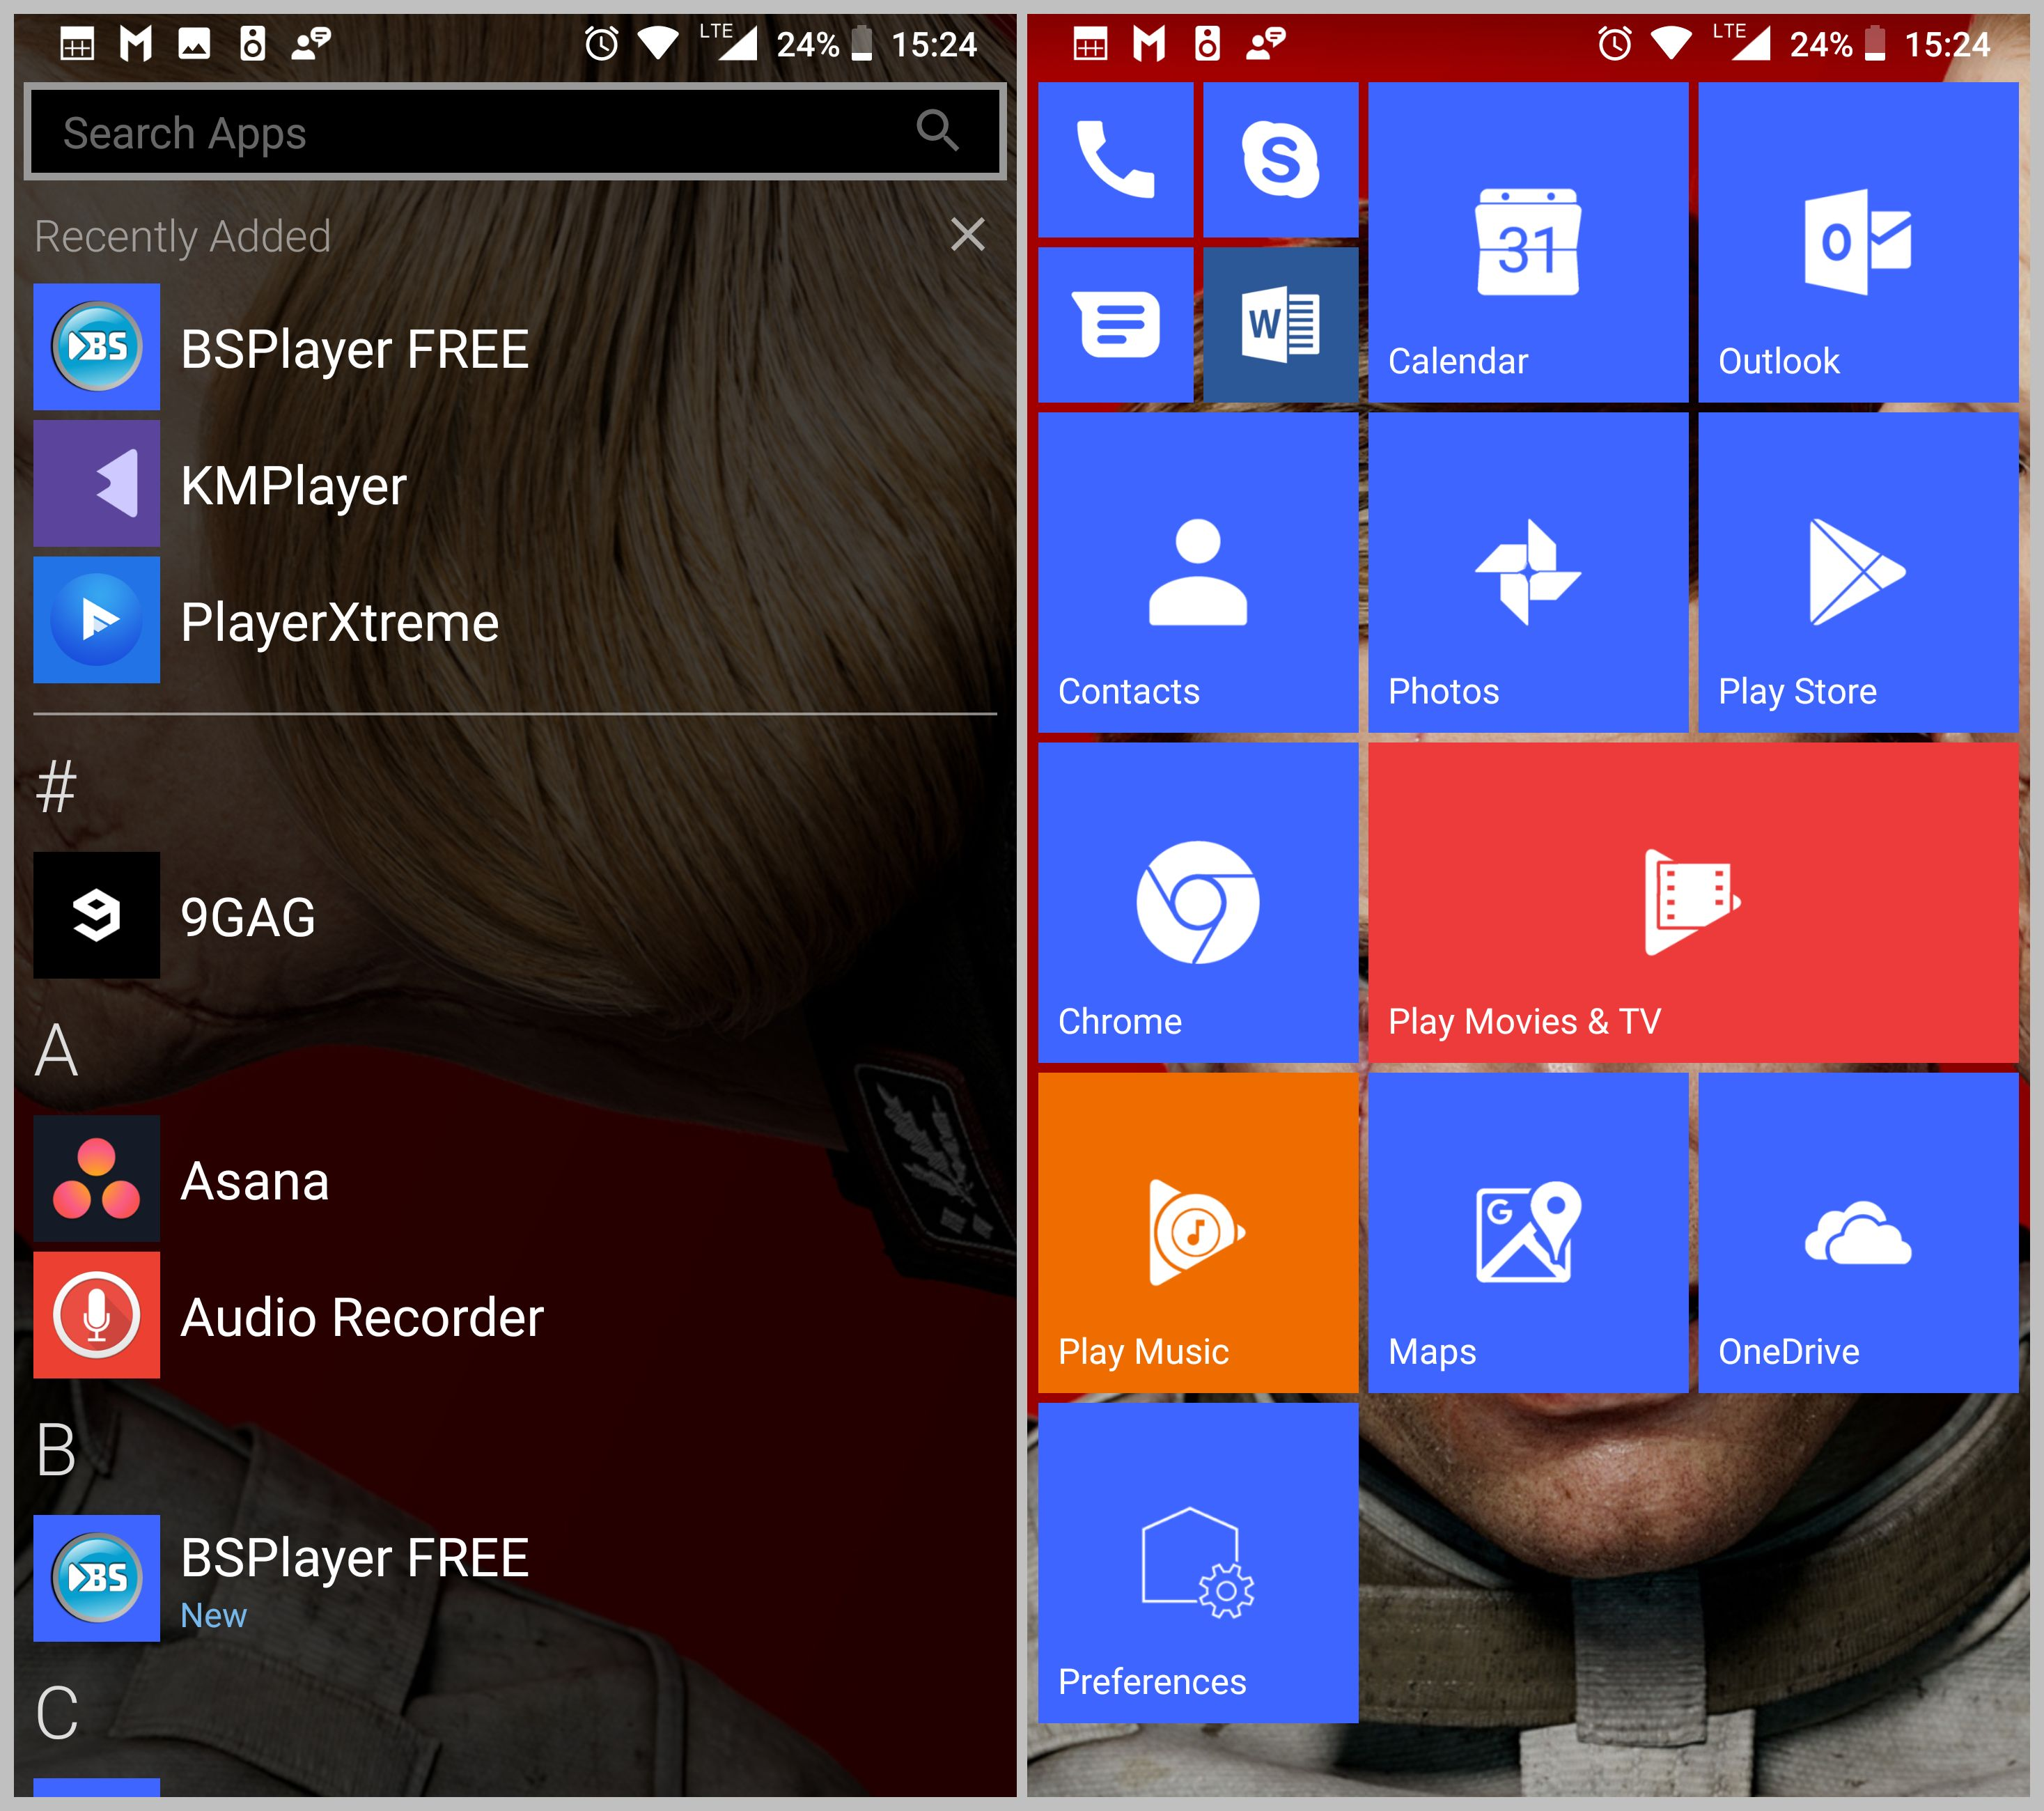 Launcher10, Windows 10 Mobile, Android, Nokia 8